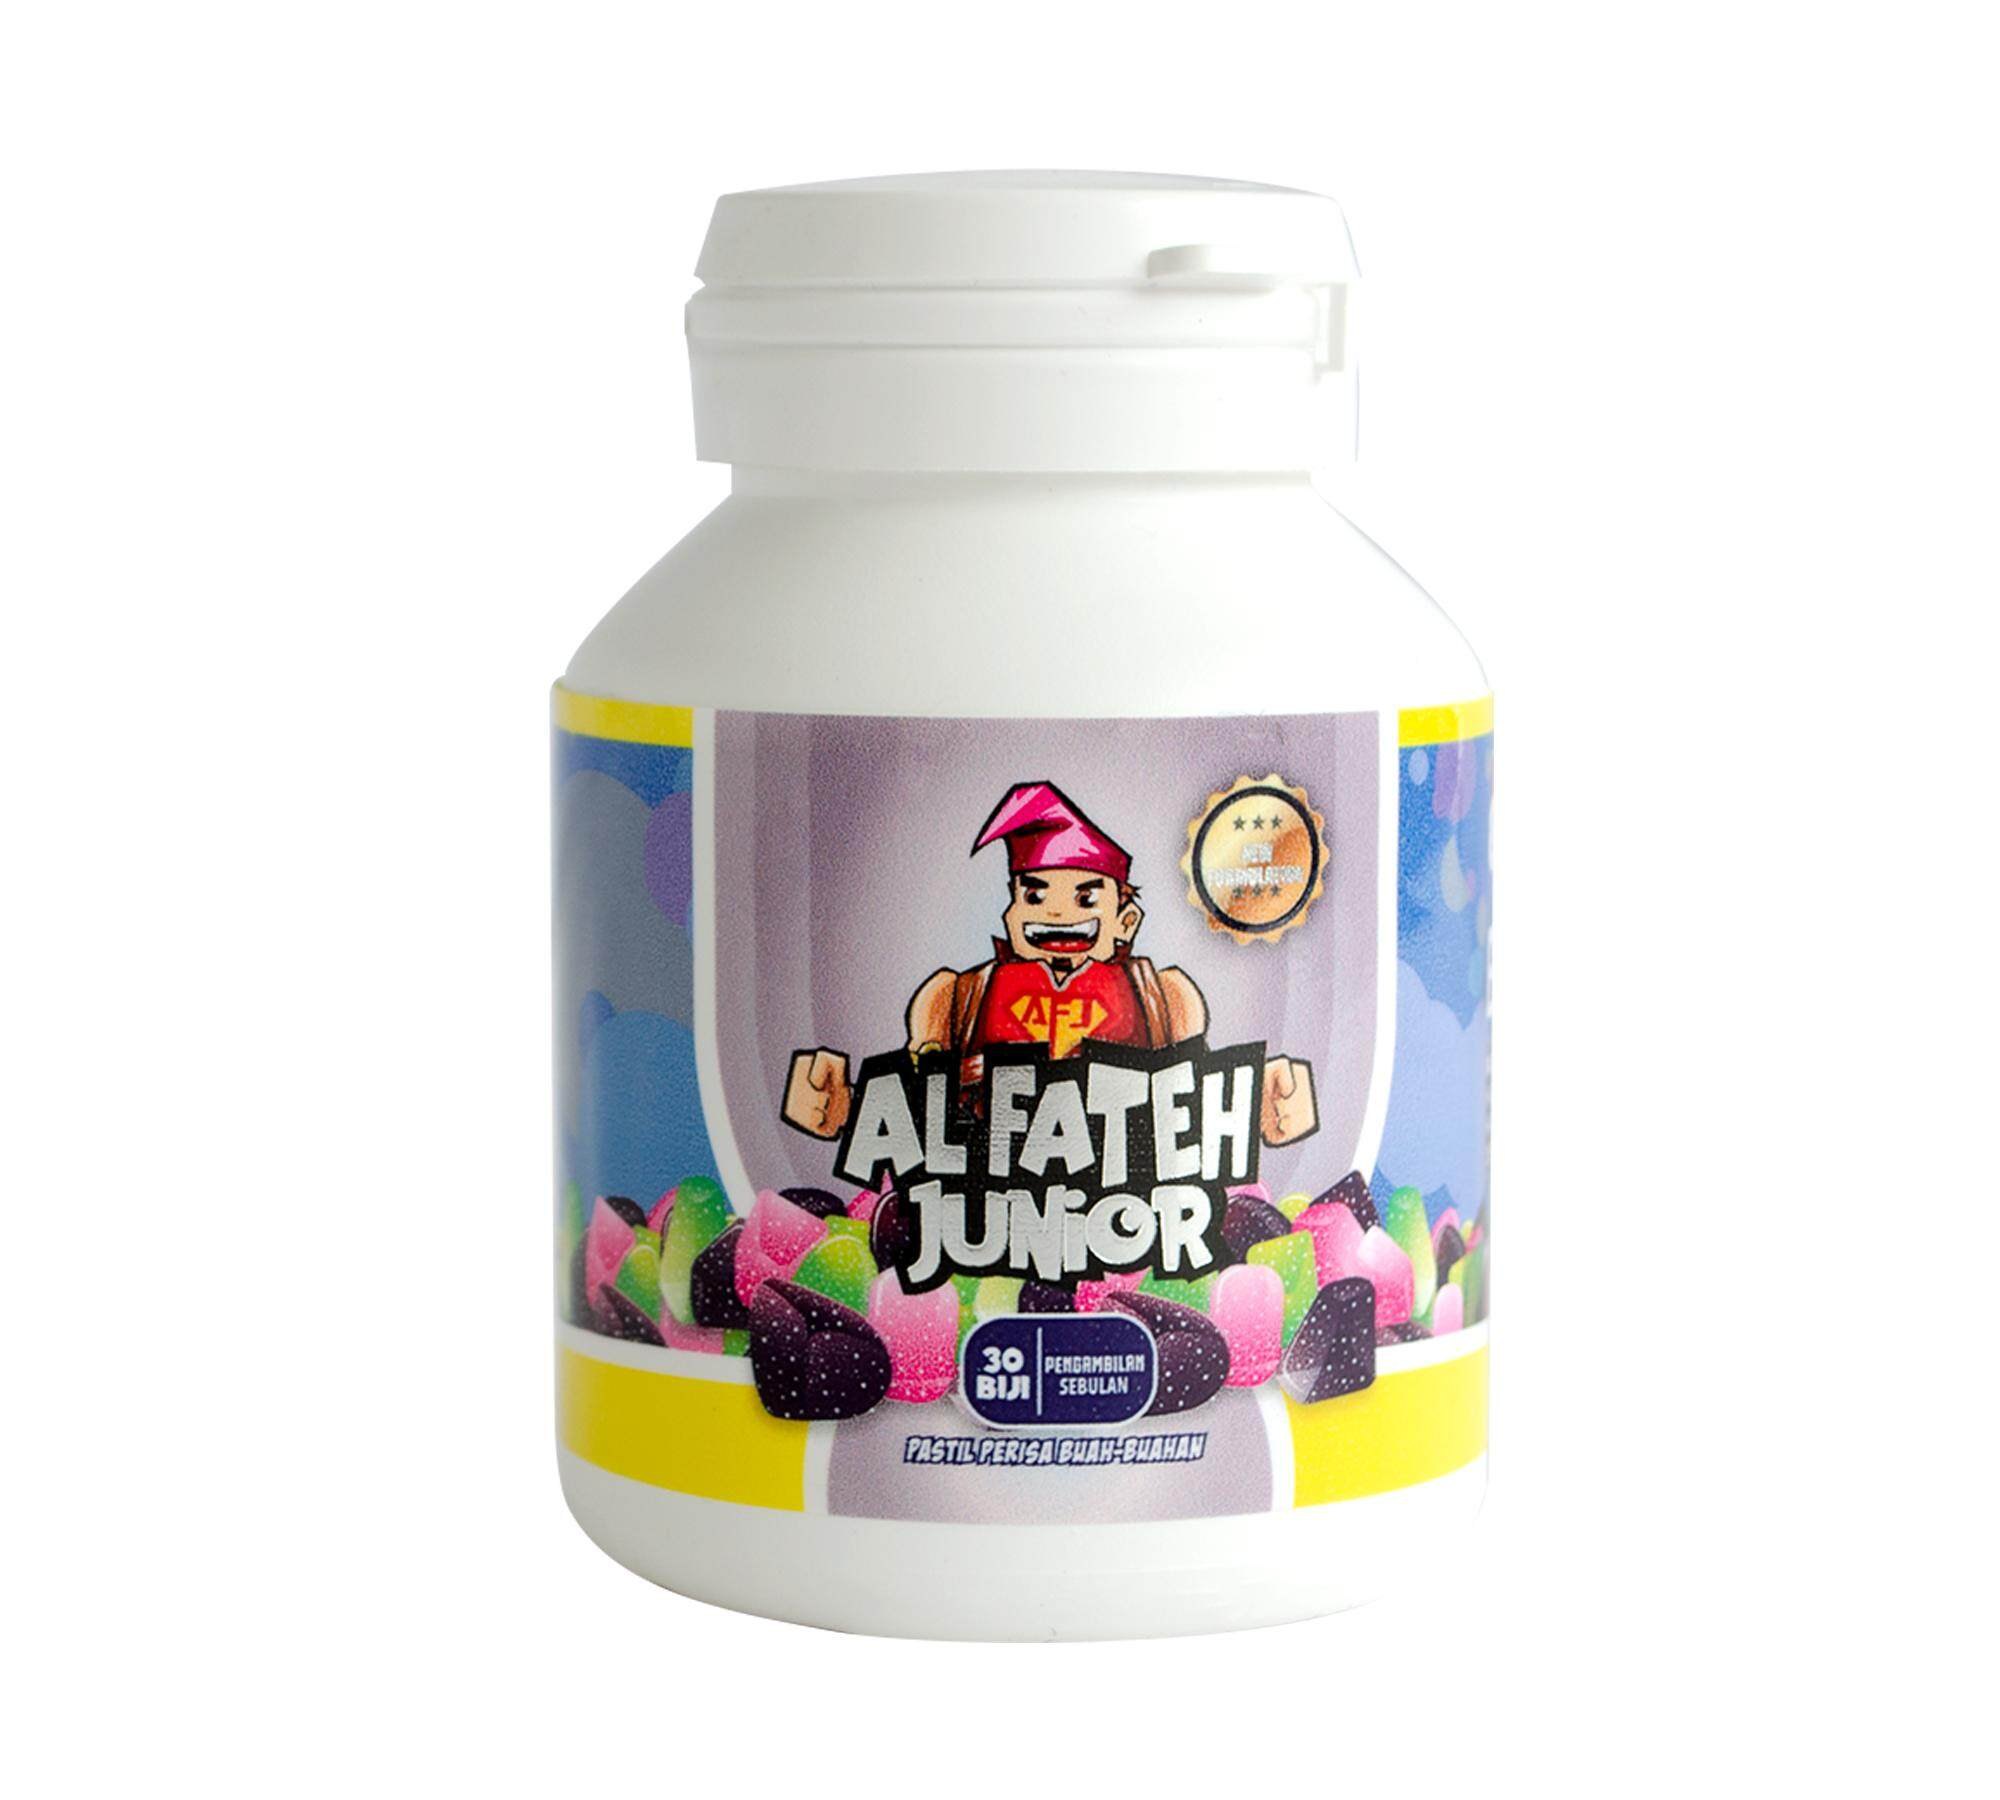 Protein Buy At Best Price In Malaysia Nitrotech 4 Lbs Strawberry Al Fateh Junior Candy 30 Biji New Formulation Original